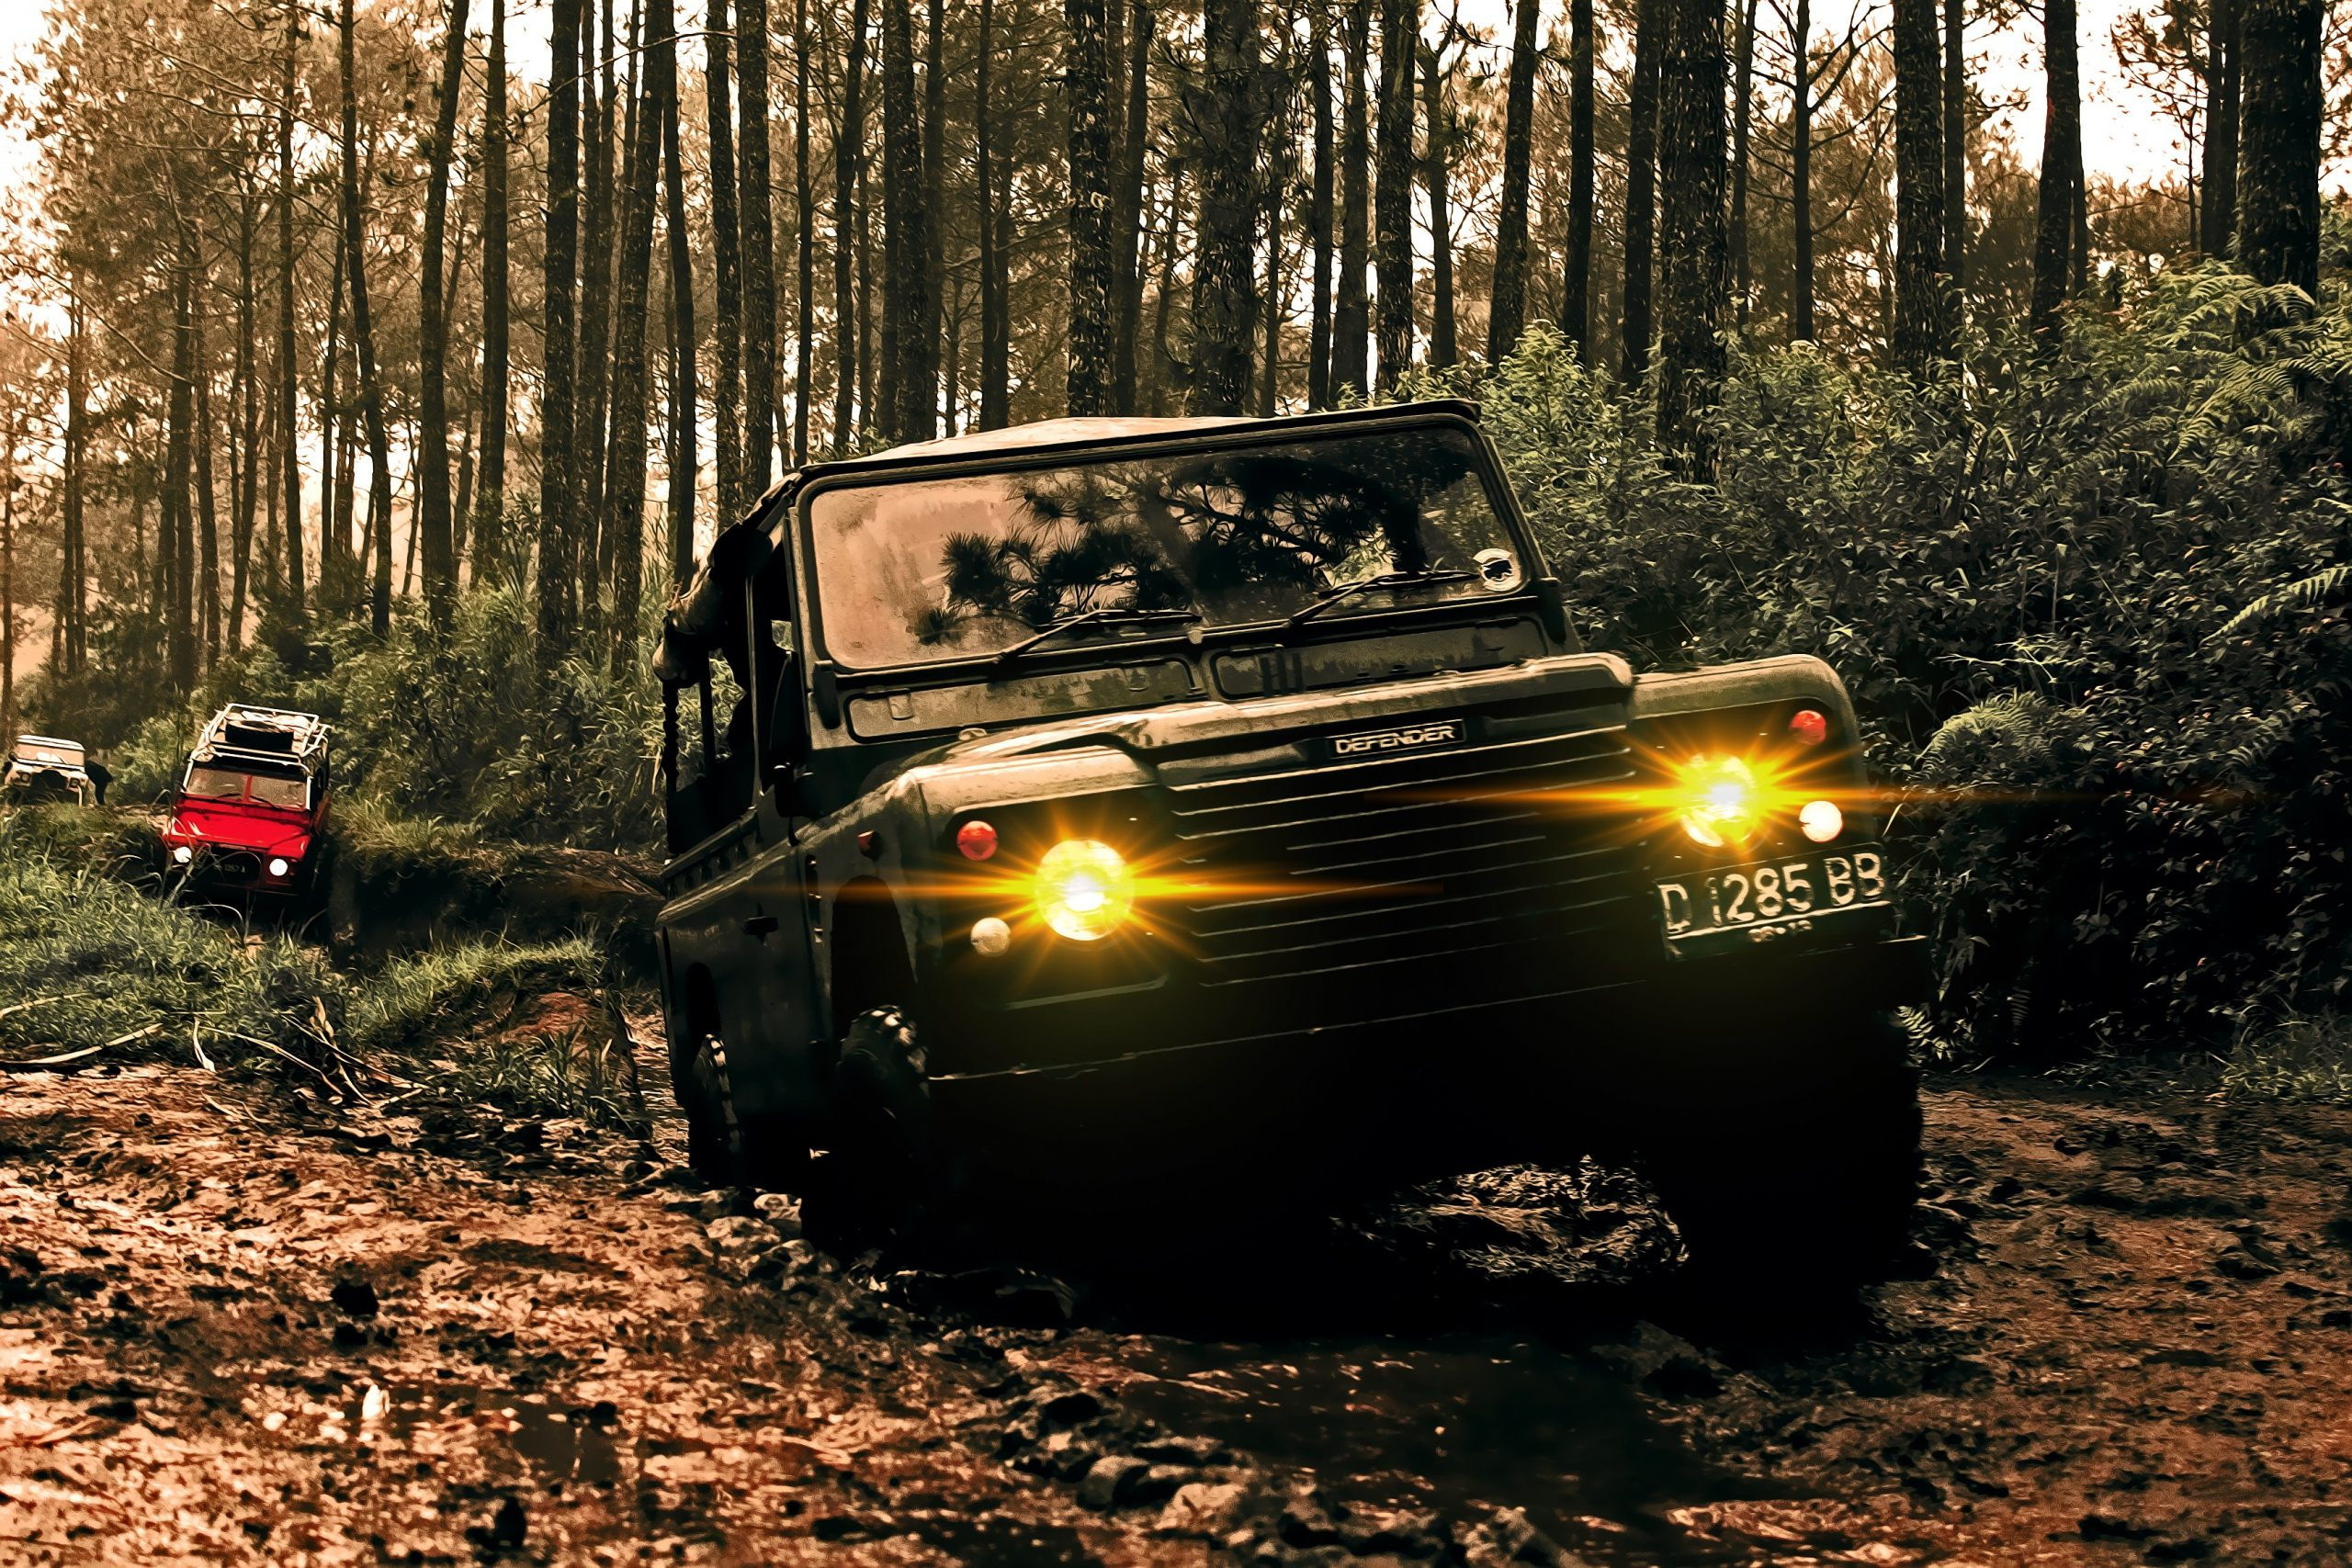 Going for an Offroad Trip? Some Things You Should Know